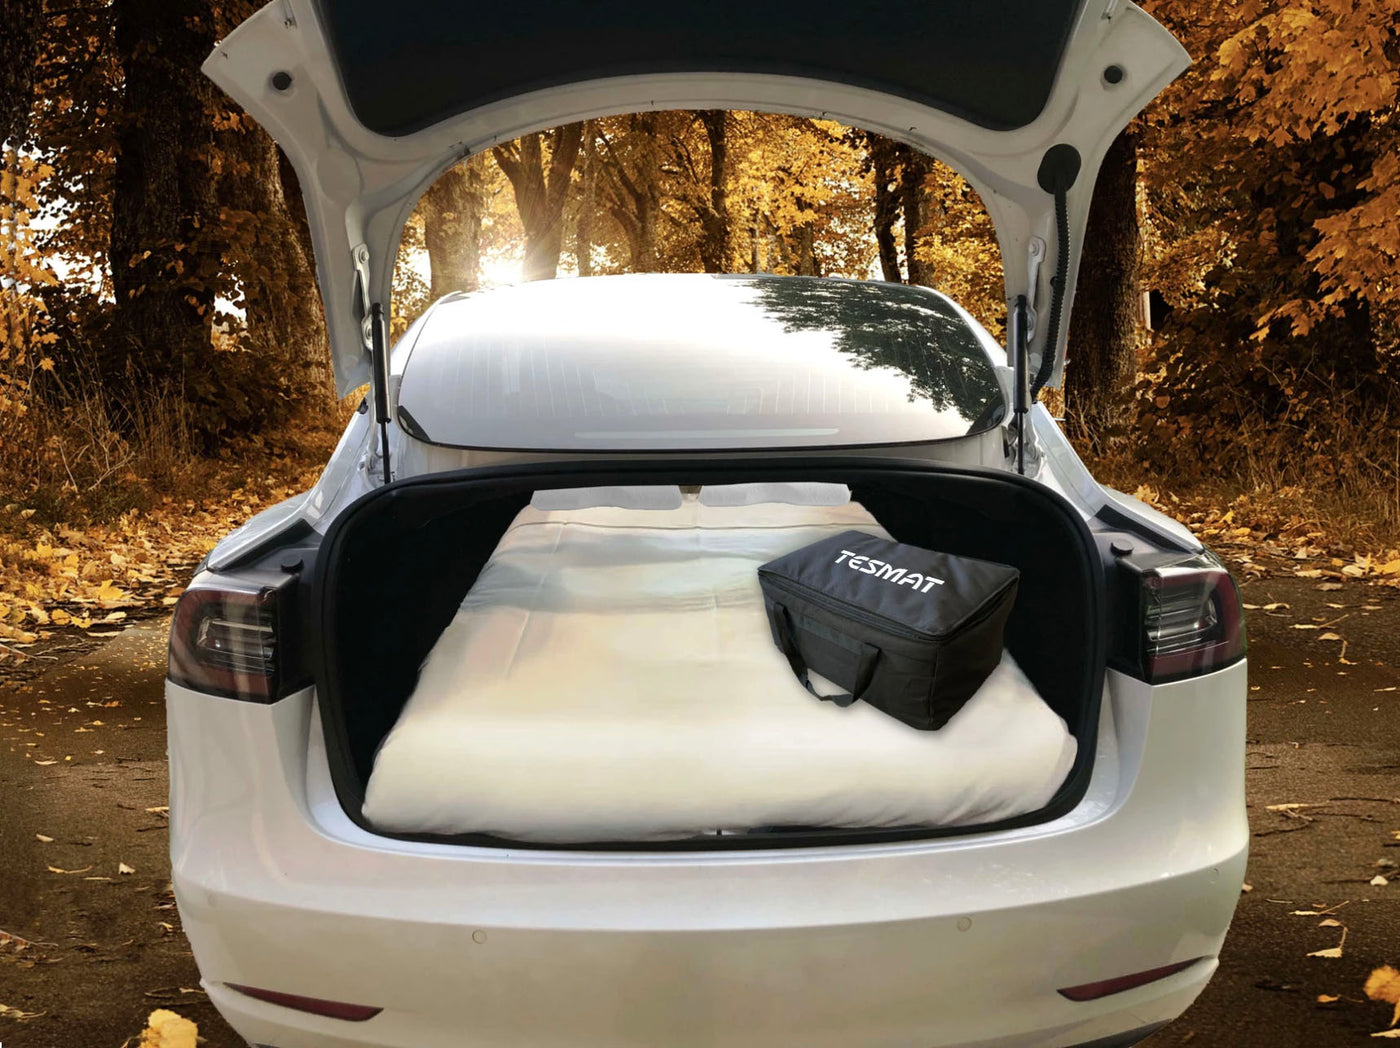 tesmat car camping mattress set up in tesla trunk